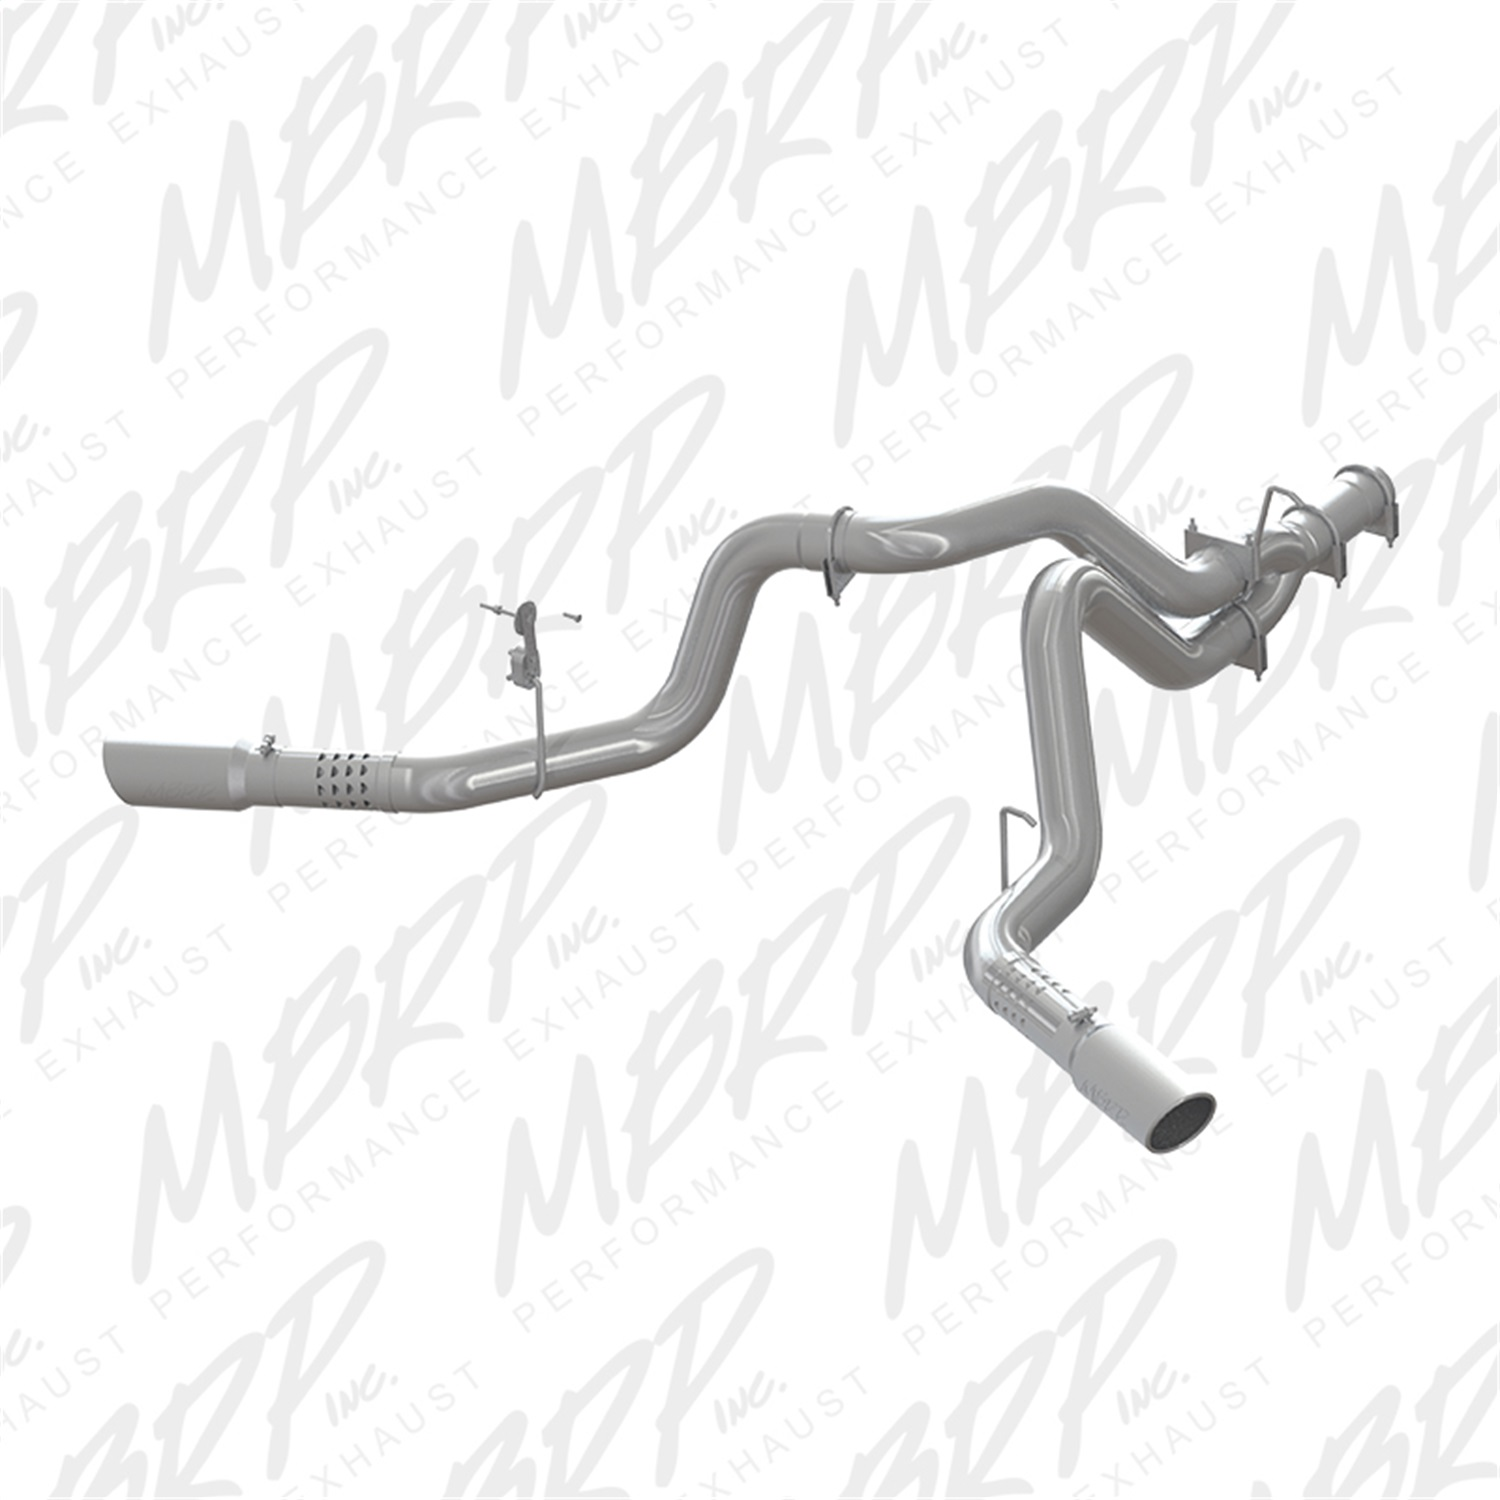 MBRP Exhaust S6035AL XP Series Cool Duals Filter Back Exhaust System